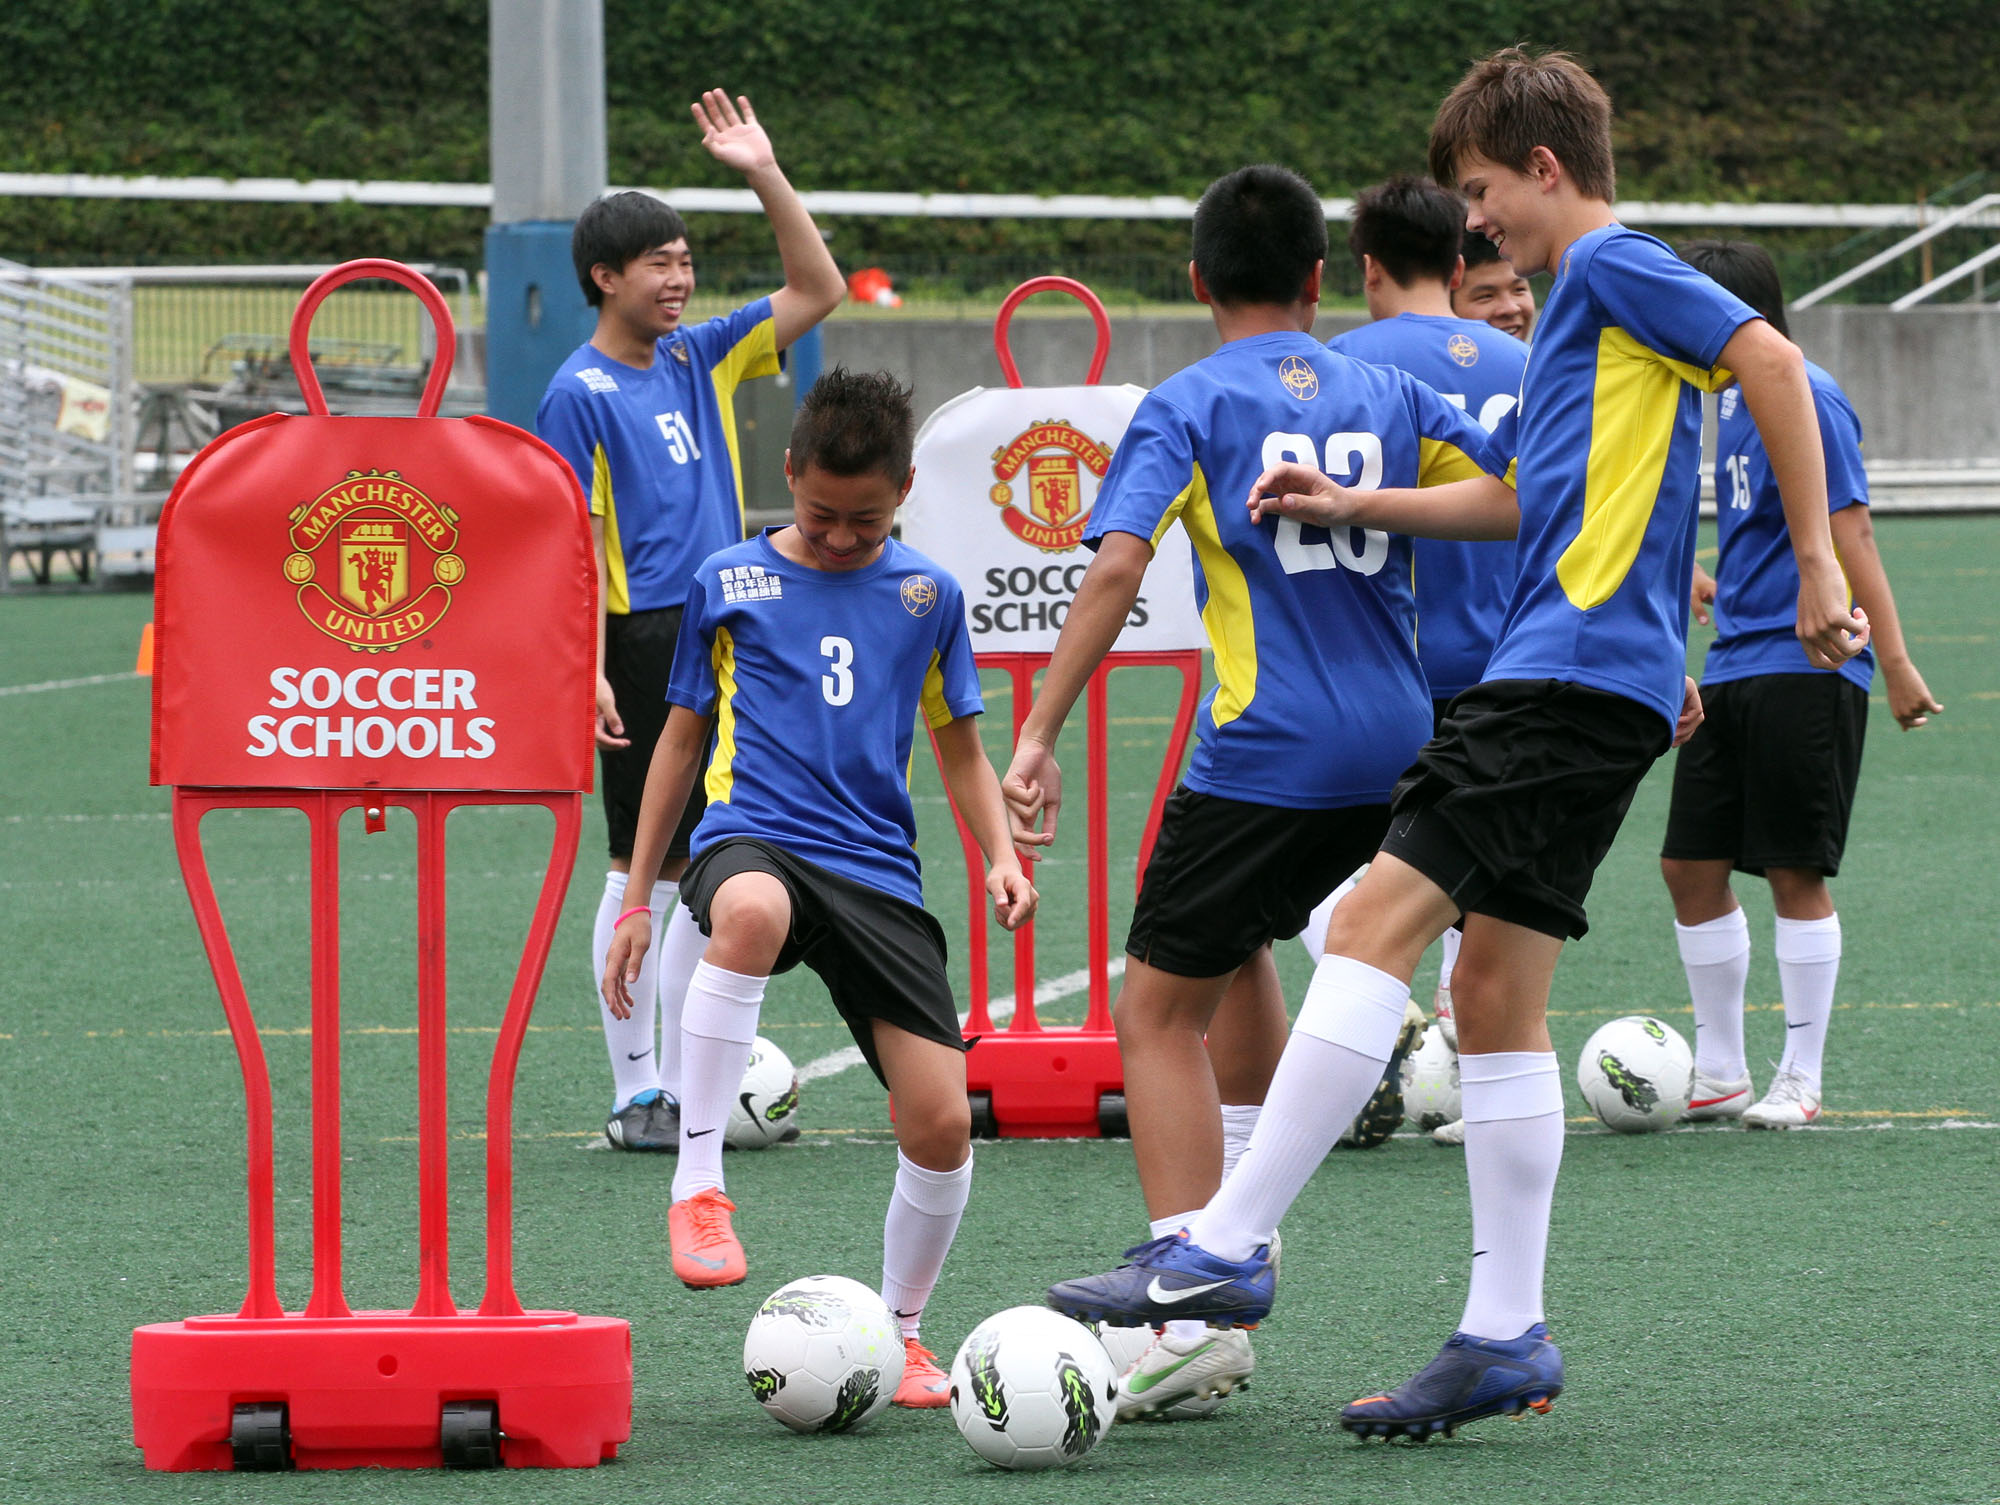 Club funds Hong Kong's young football elite to train the